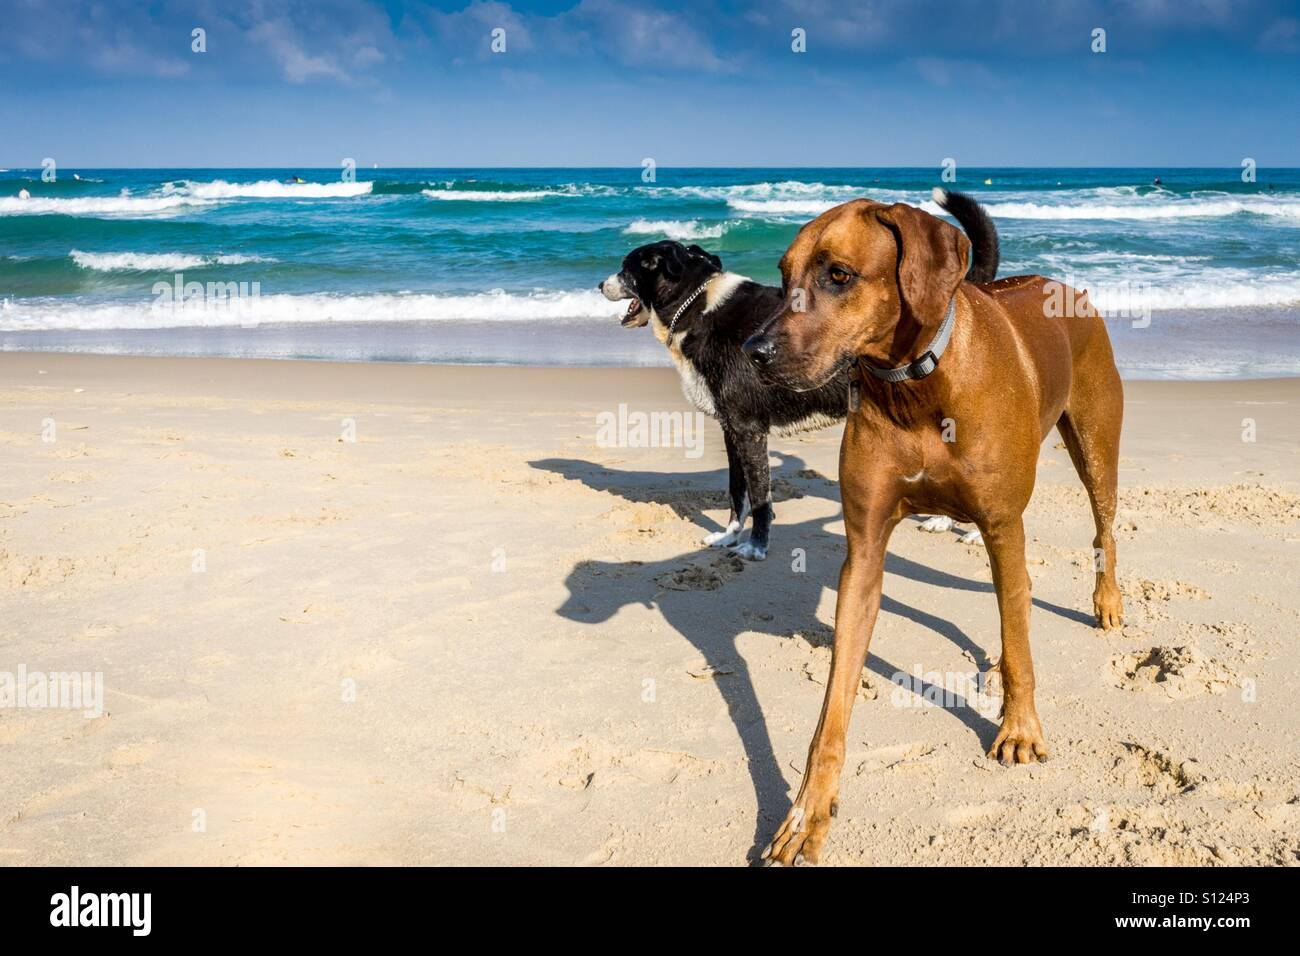 Tow Dogs at the beach. - Stock Image